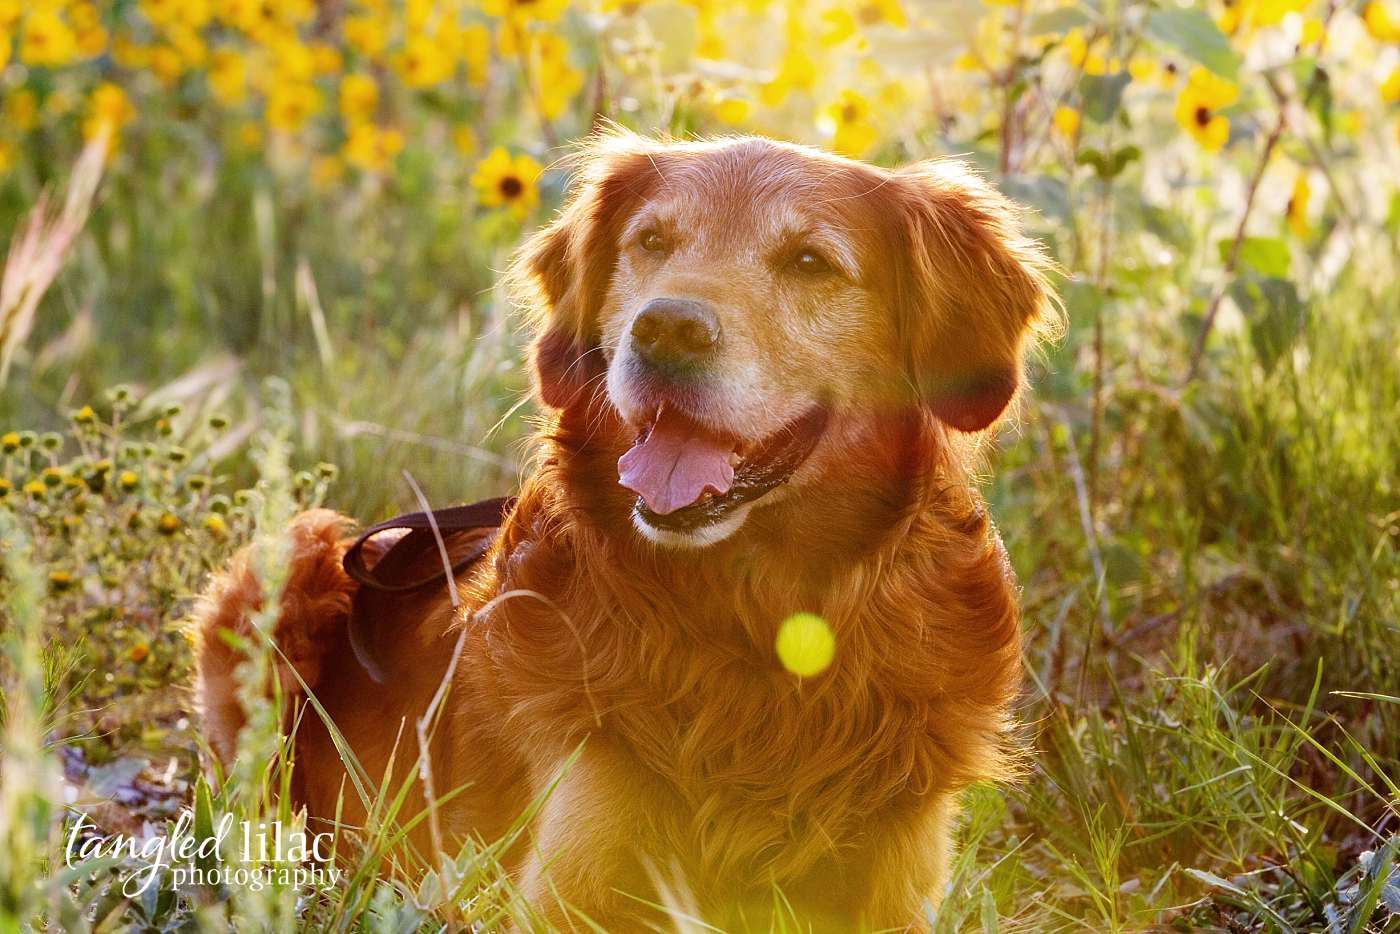 A smiling golden retriever in sunflowers right before the sun goes down being during a dog photography session